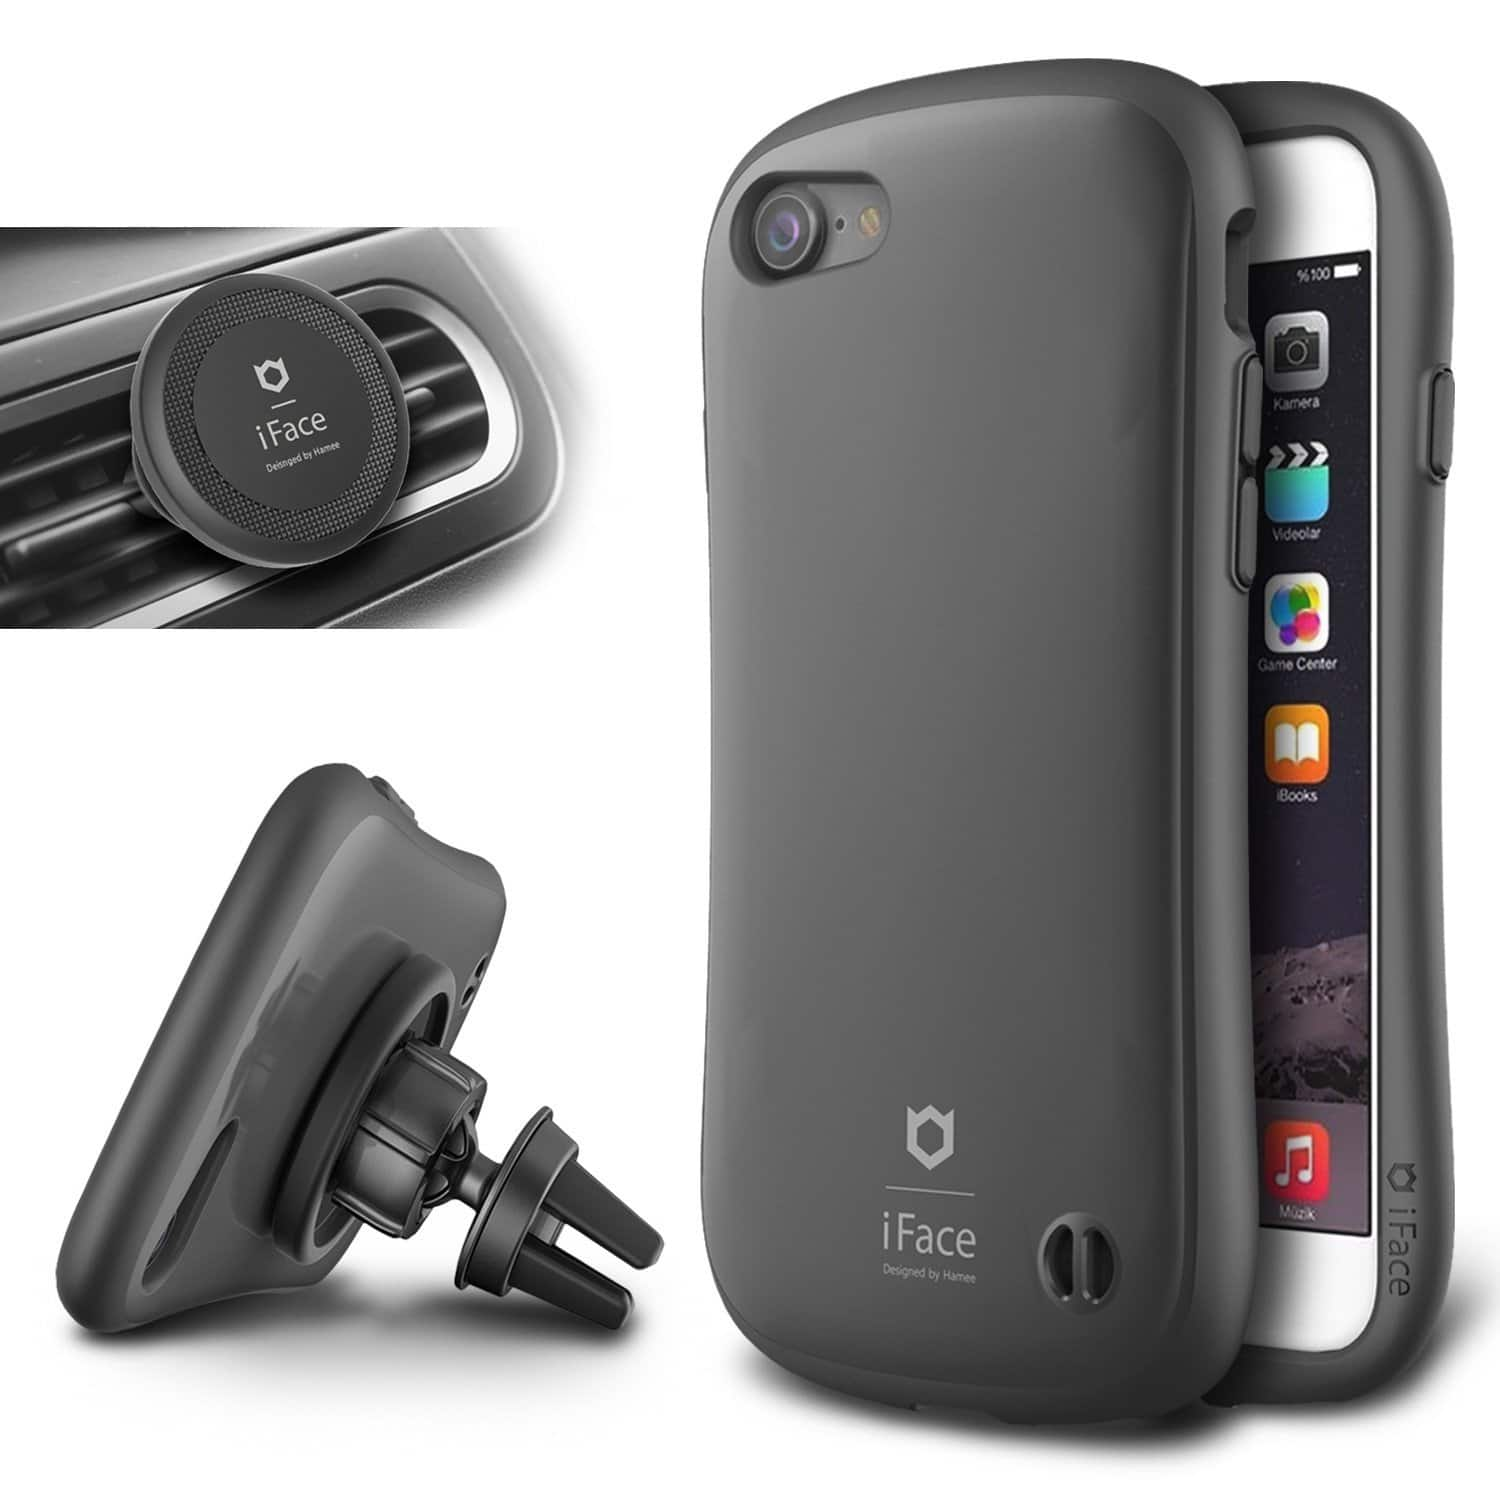 iFace iPhone 7/7 Plus Hard Case w/ Magnetic Air Vent Mount  $1